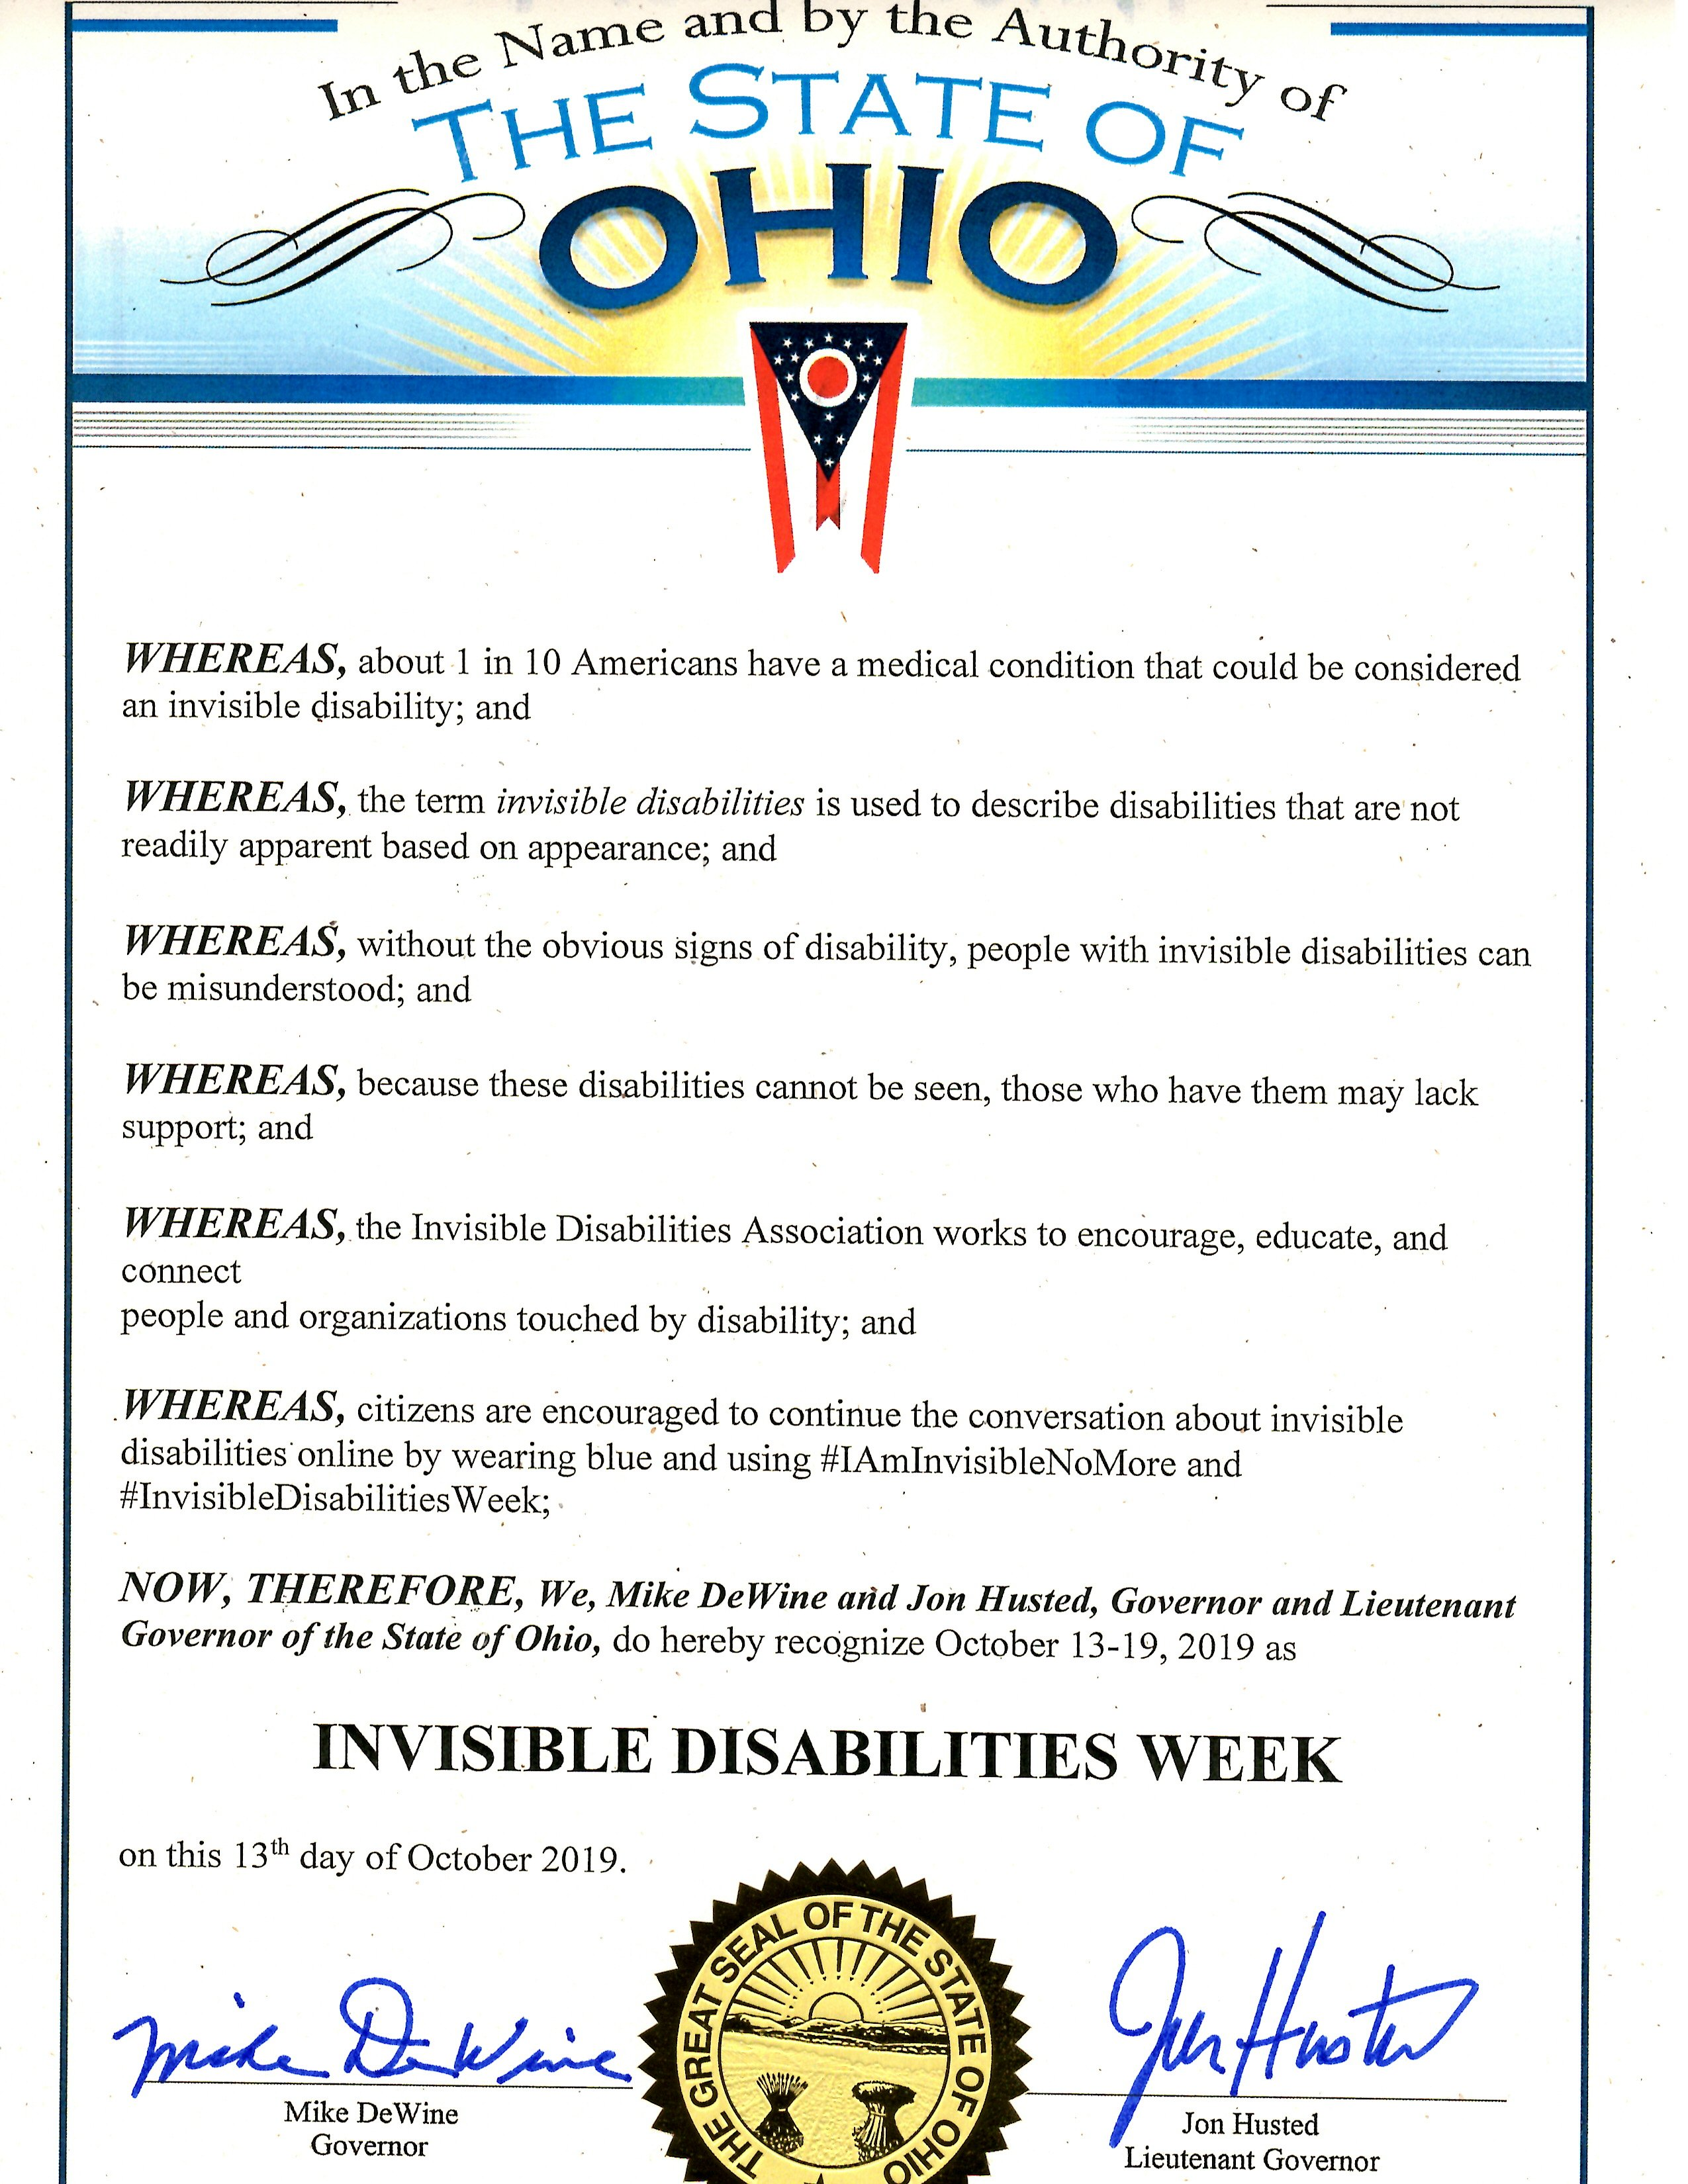 State of Ohio - Invisible Disabilities Week Proclamation 2019